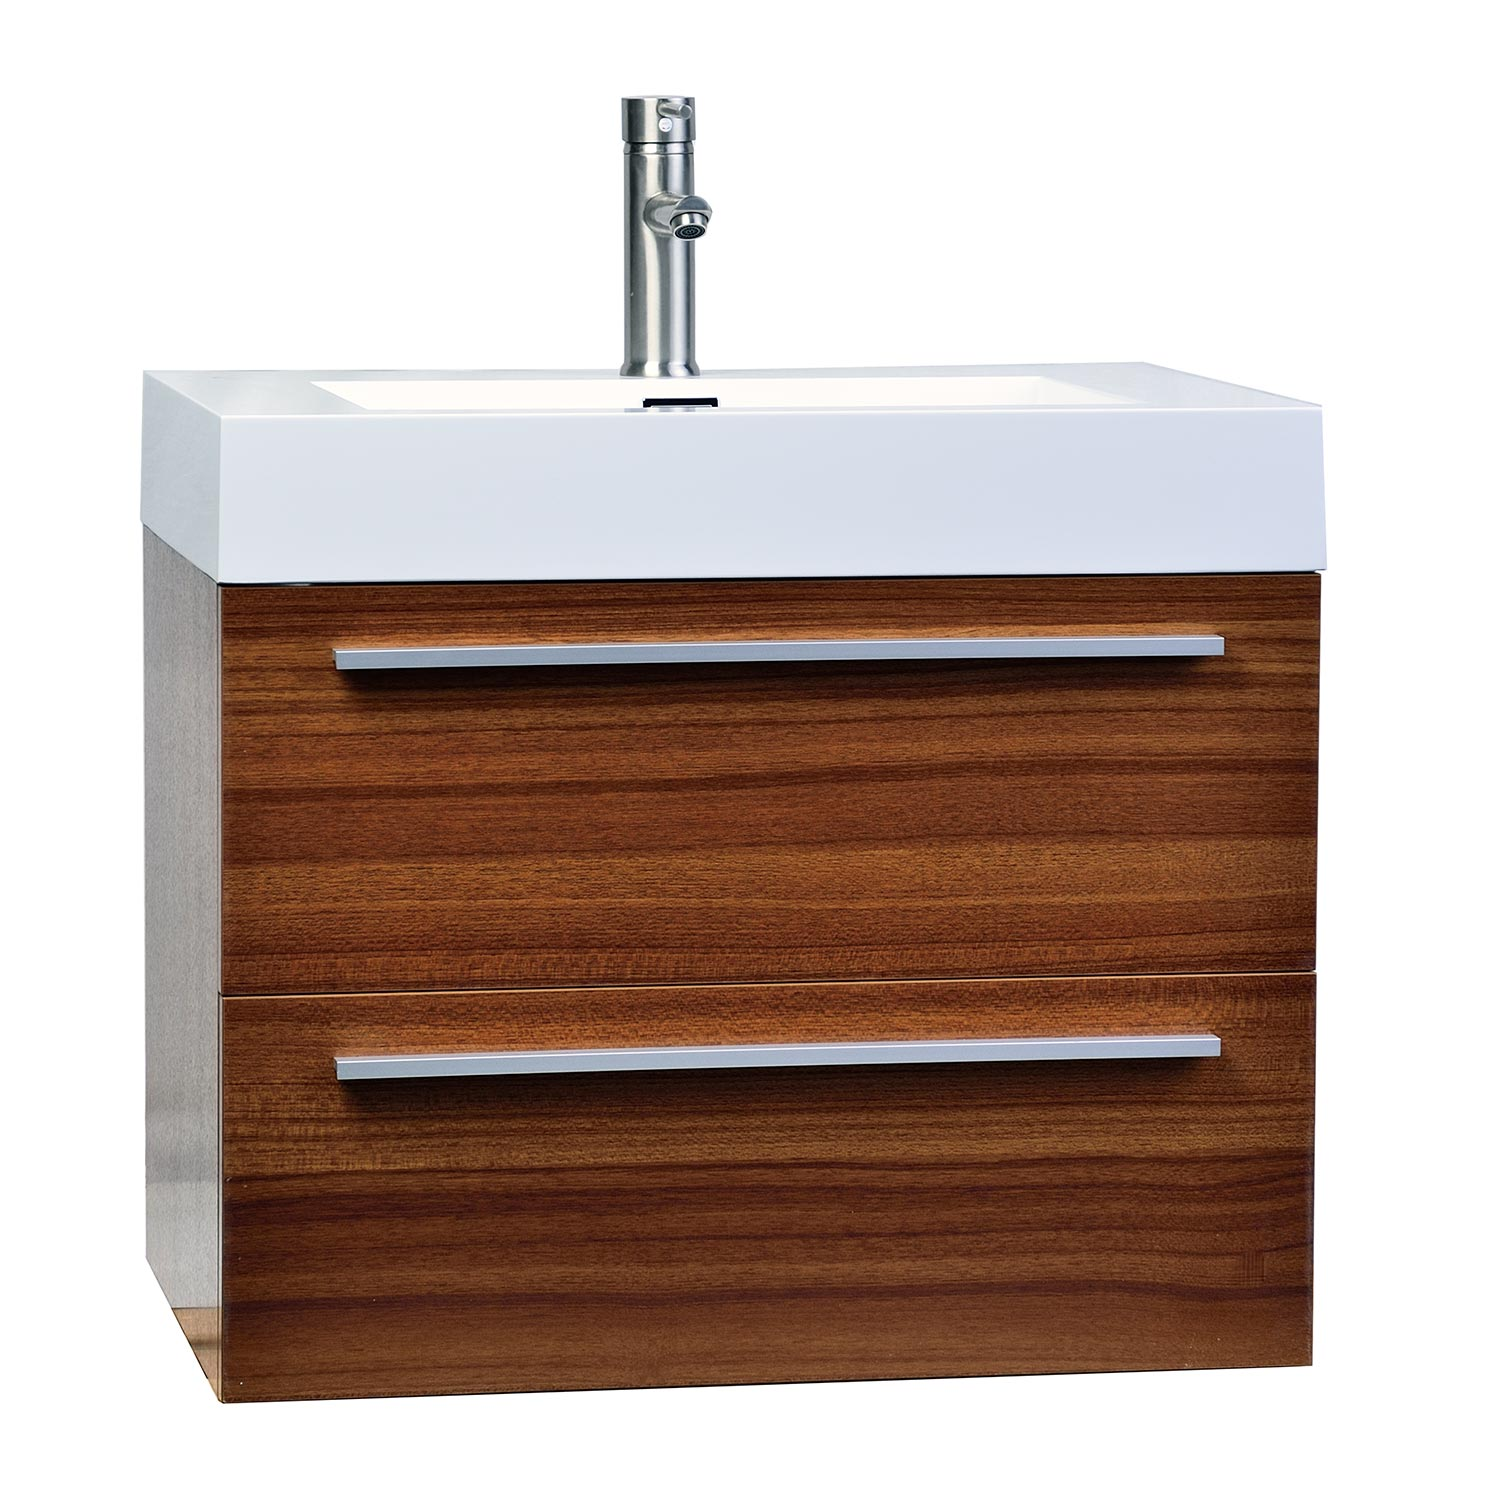 Miraculous 26 75 Single Bathroom Vanity Set In Teak Tn T690 Tk Home Remodeling Inspirations Genioncuboardxyz